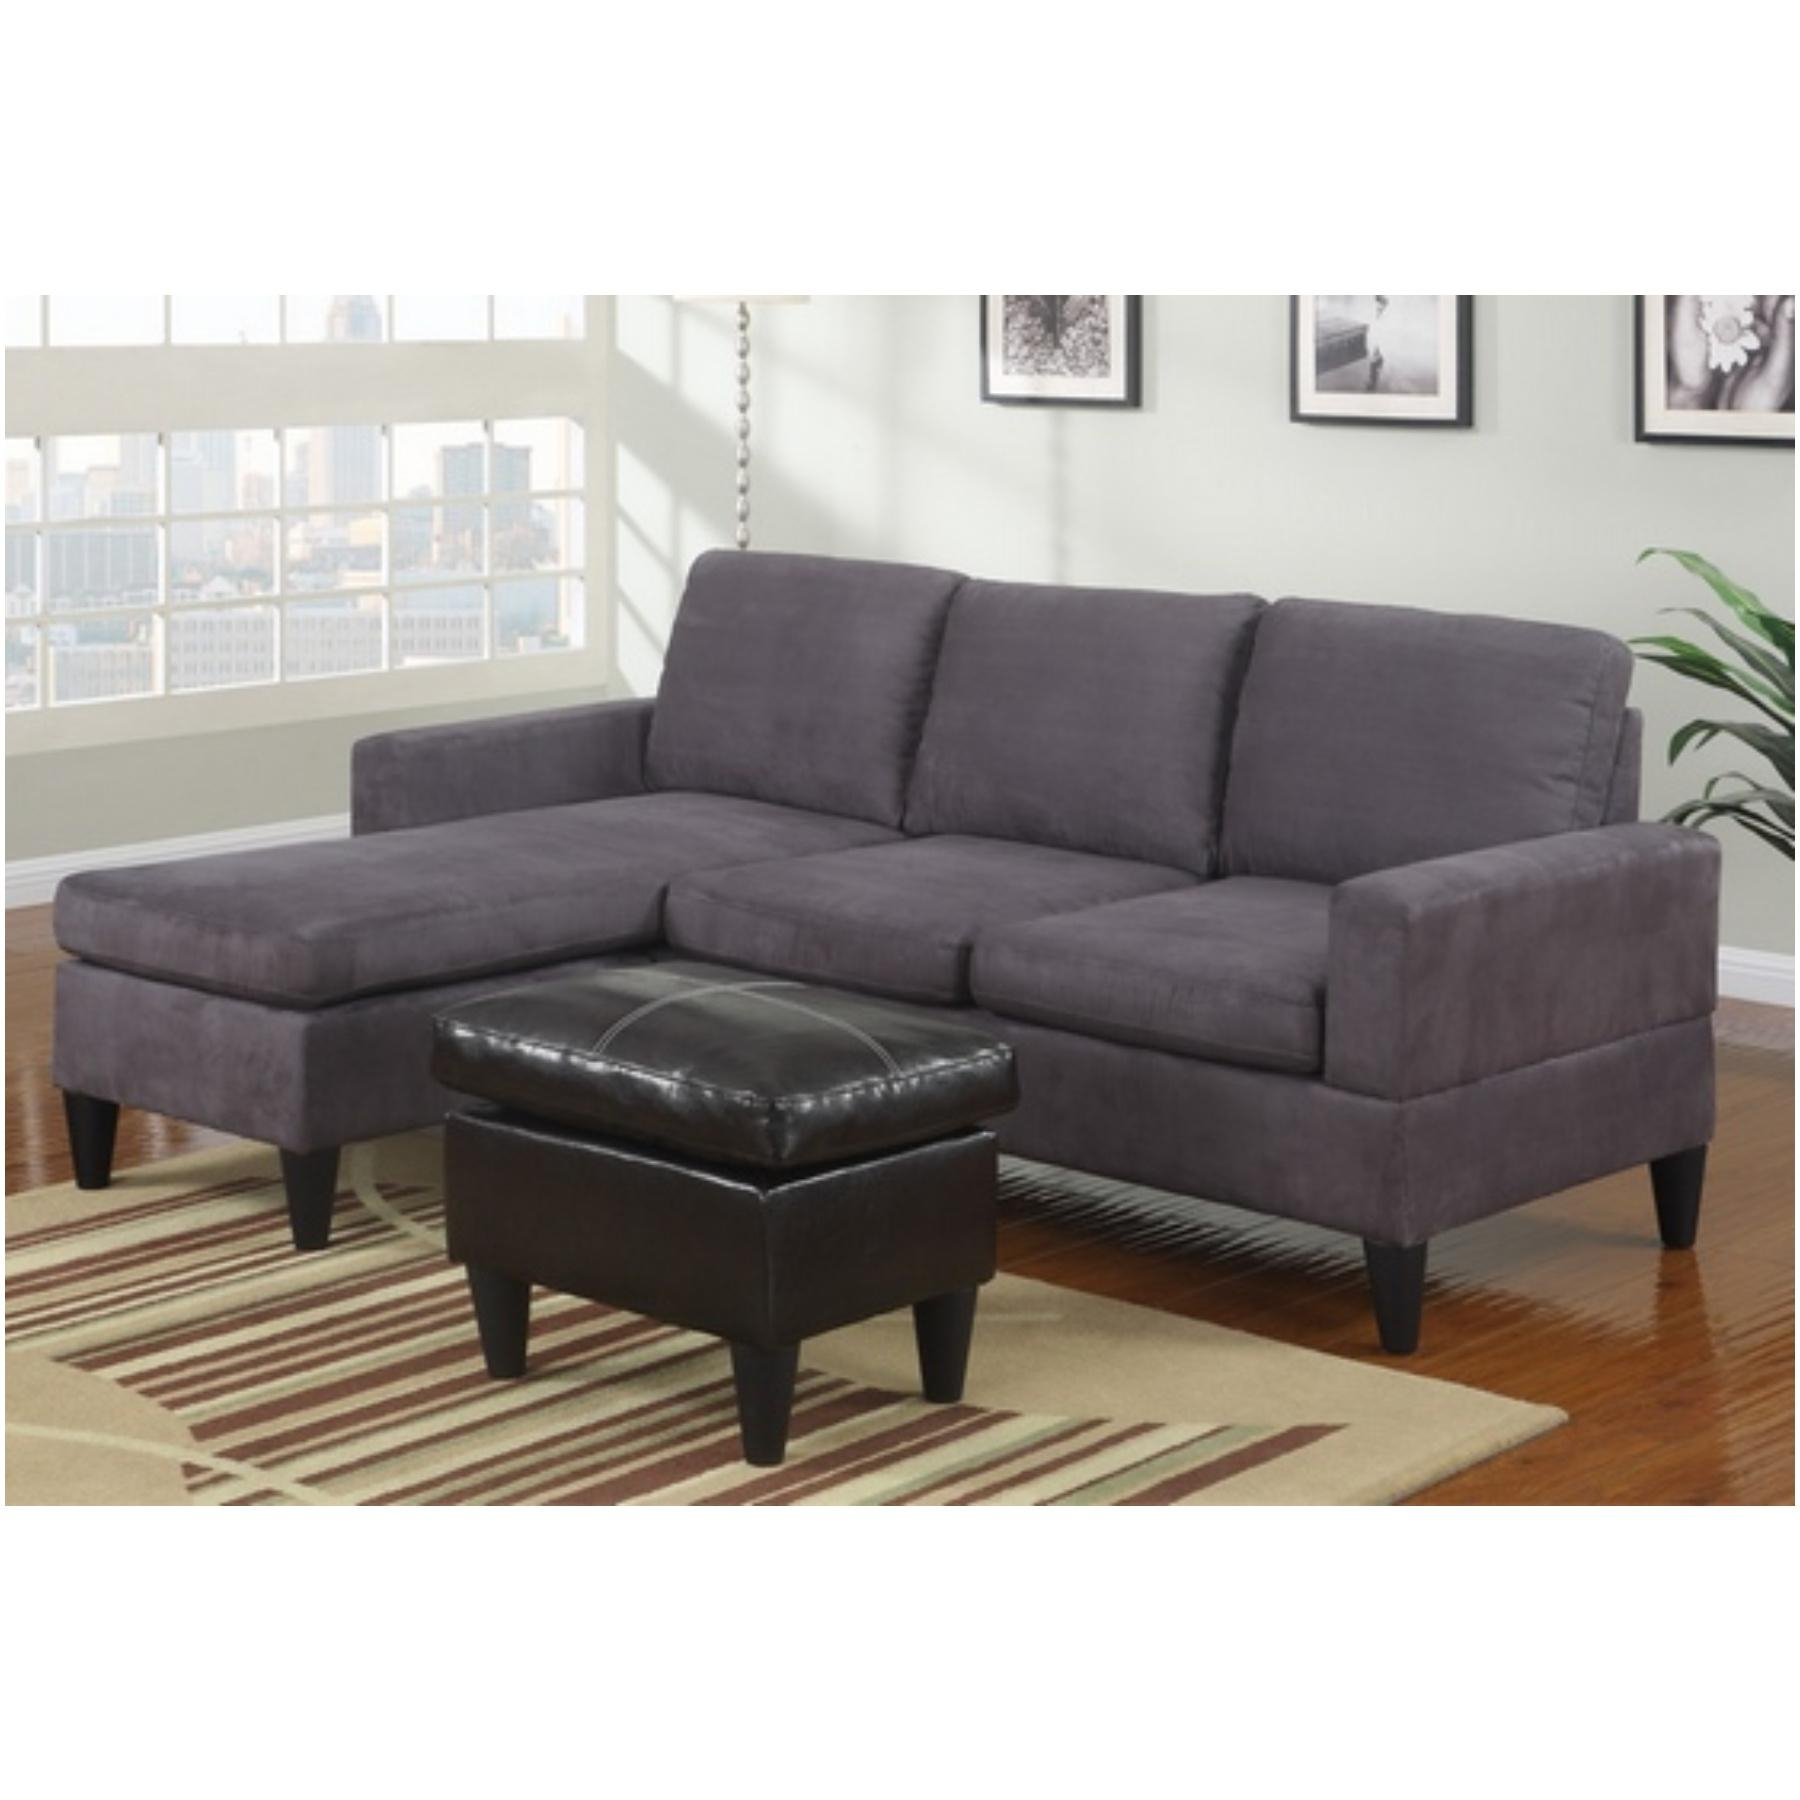 Apartment Size Sectional Sofa With Chaise | Tehranmix Decoration Within Apartment Sectional Sofa With Chaise (View 10 of 15)